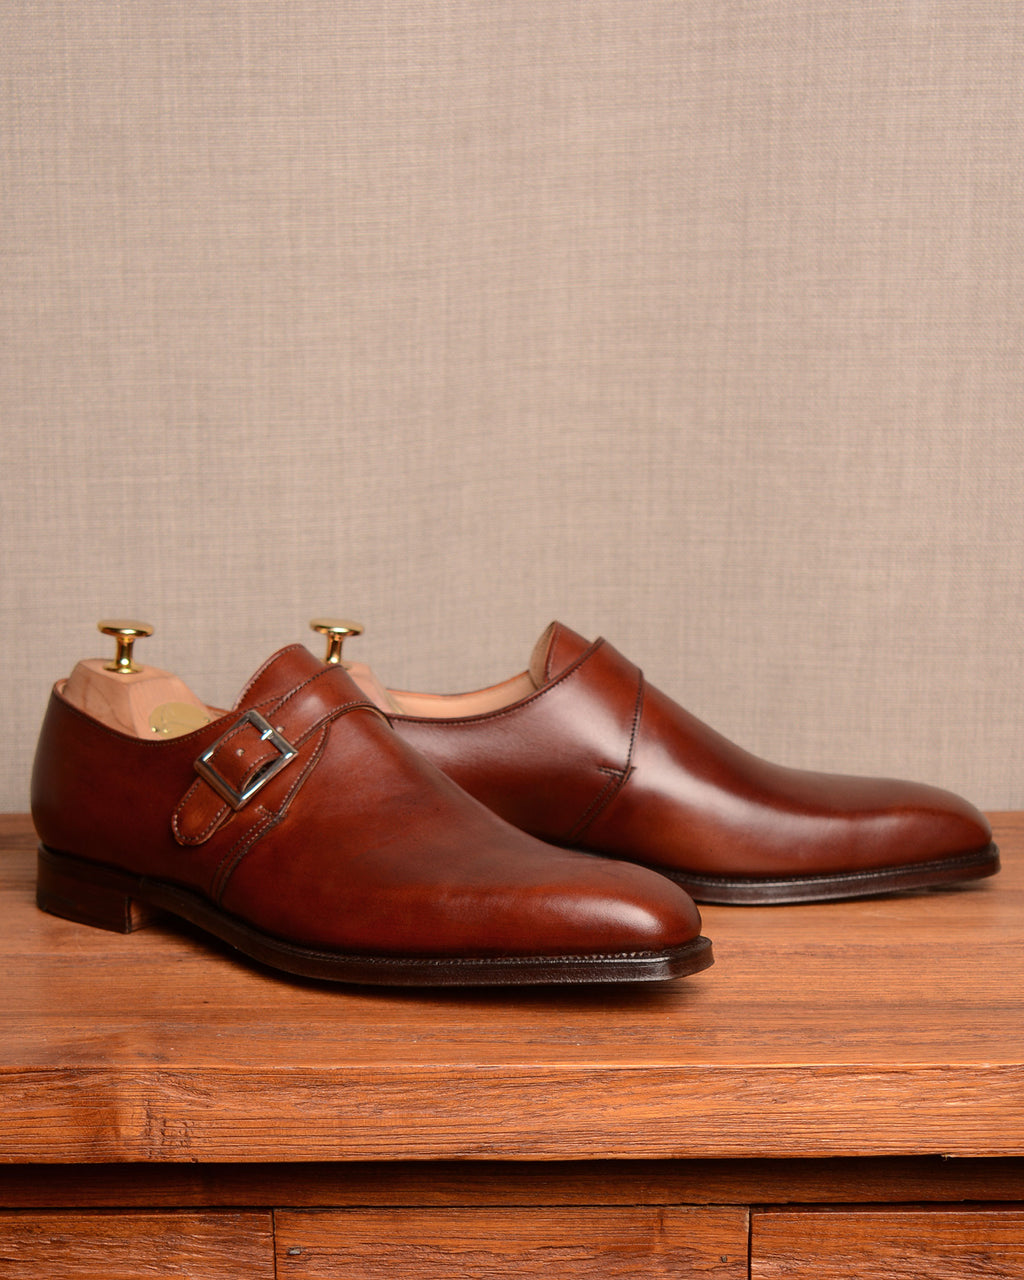 Crockett & Jones Monkton - Chestnut